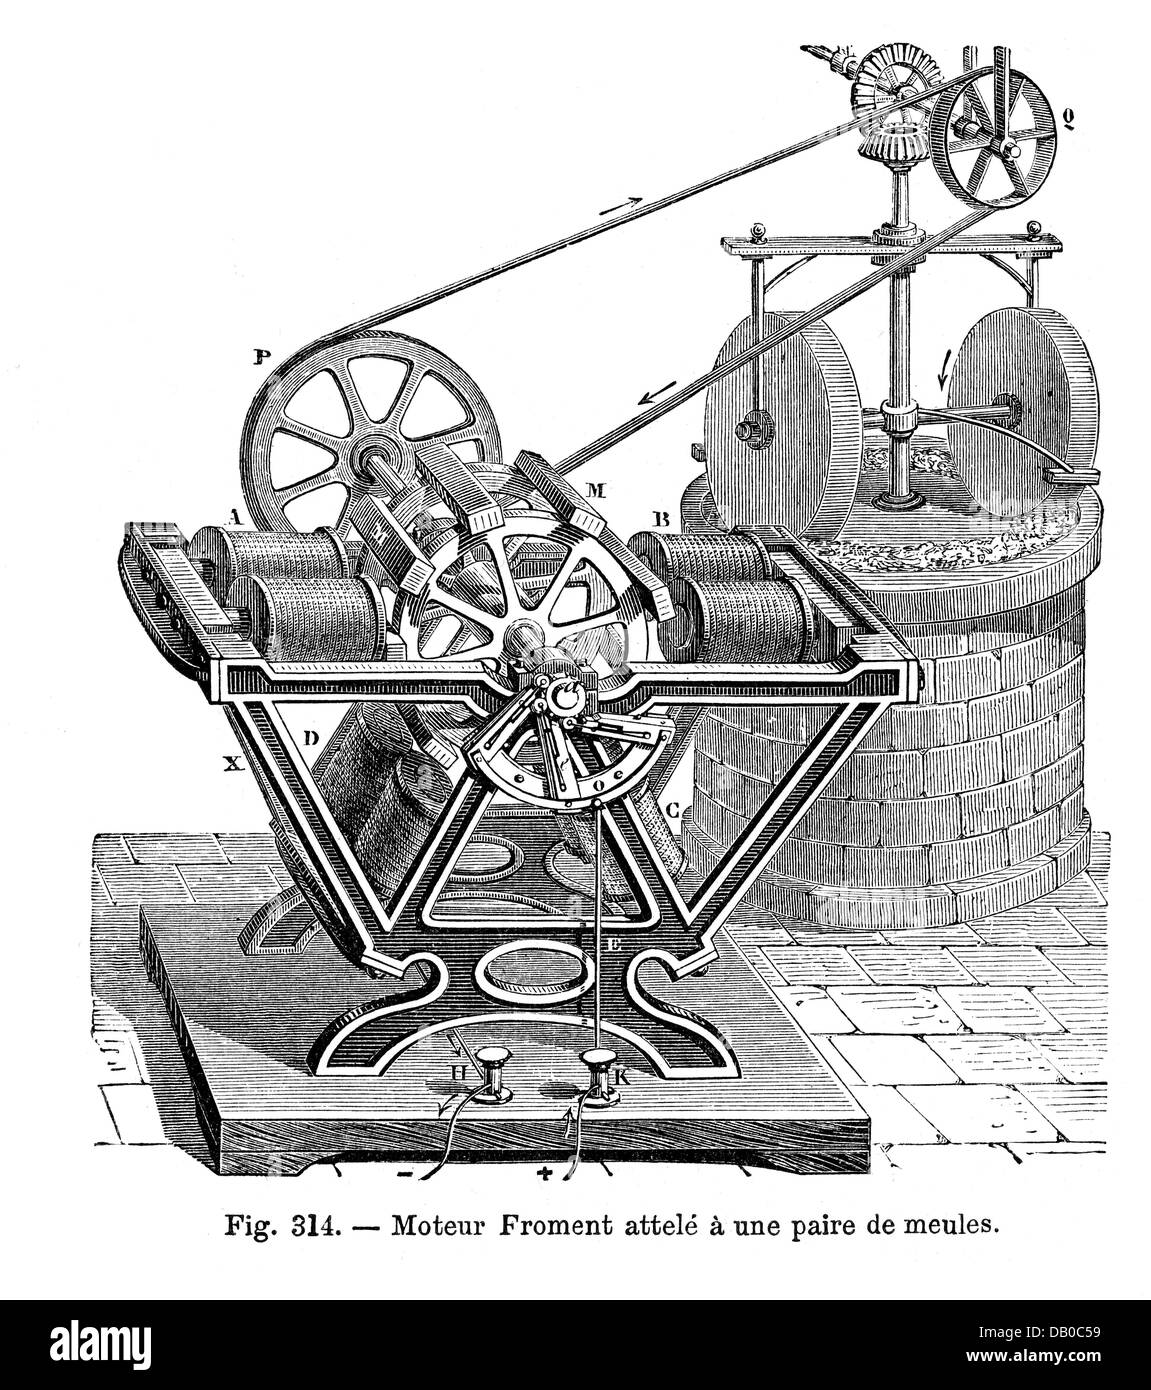 energy, electricity, electric motor, by Paul-Gustave Froment, (1815 - 1865), driving a mill, wood engraving, 19th century, 19th century, design, engine, motor, engines, motors, electric power, electric drive, electrical impulse, historic, historical, Additional-Rights-Clearences-Not Available Stock Photo